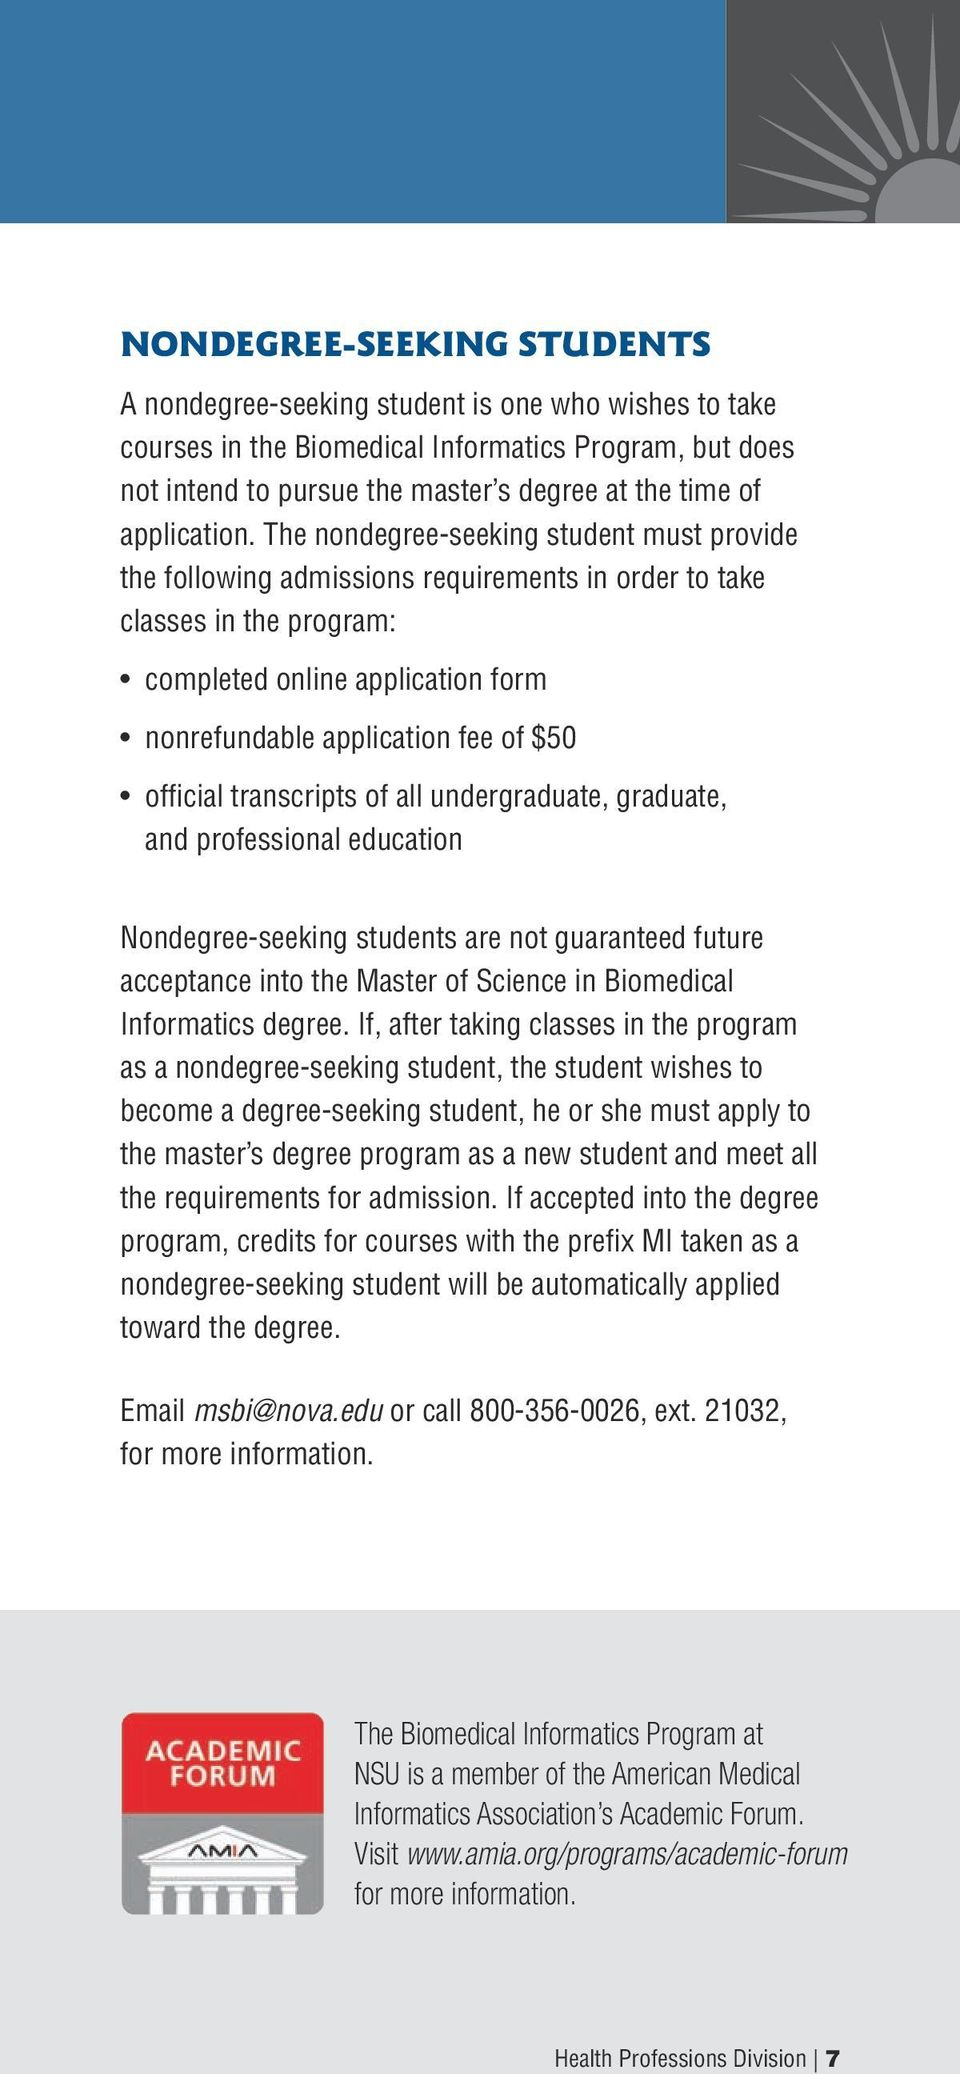 The nondegree-seeking student must provide the following admissions requirements in order to take classes in the program: completed online application form nonrefundable application fee of $50